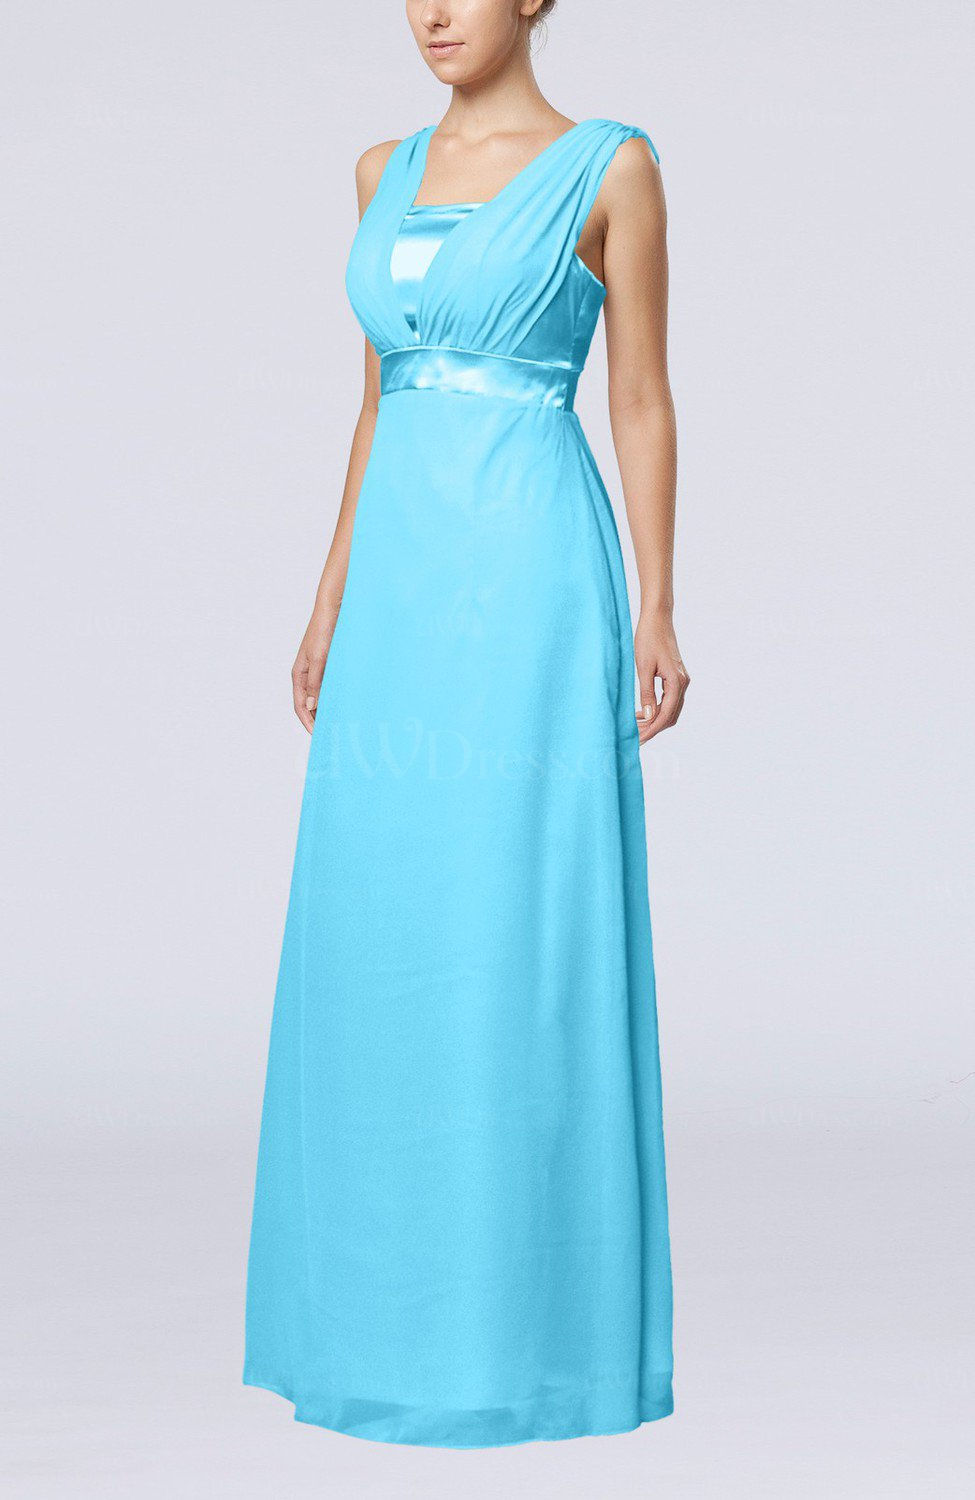 Turquoise elegant empire thick straps sleeveless chiffon for Turquoise wedding guest dress